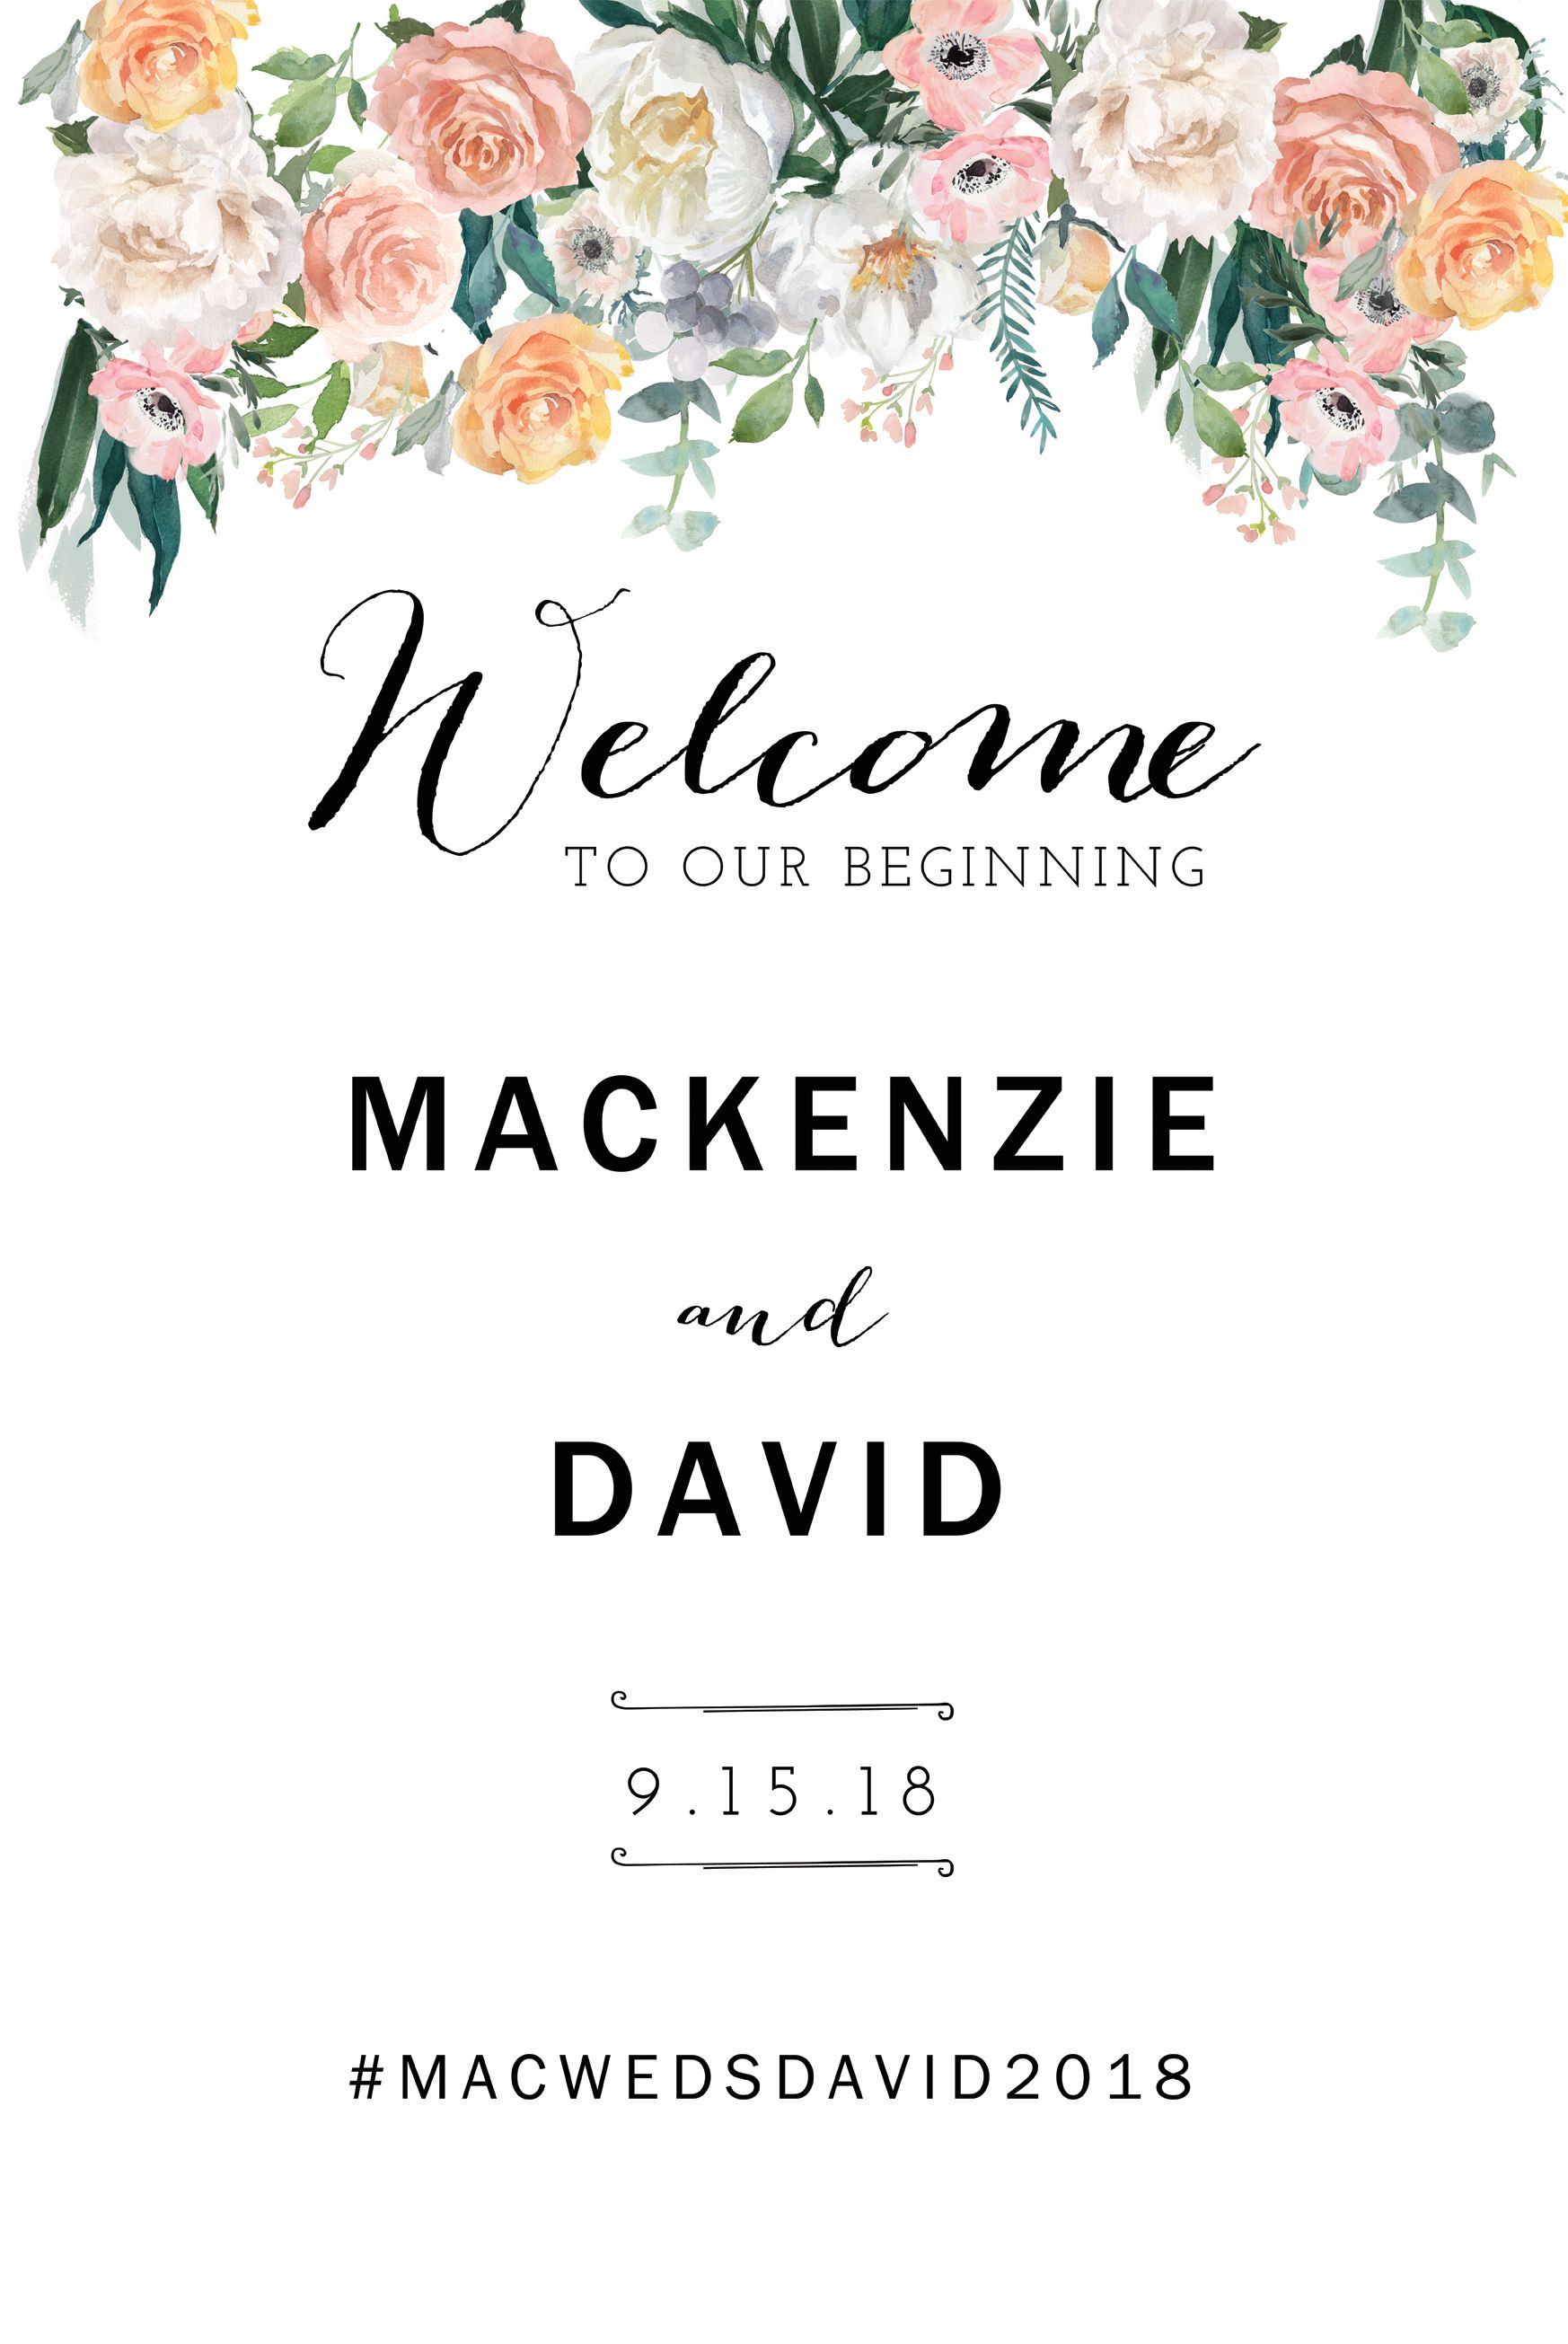 Wedding Welcome Sign Template Printable Wedding Welcome Sign Diy Wedding Sign Printable Vertical Wedding Sign Sign Templates Wedding Signs Diy Welcome Sign